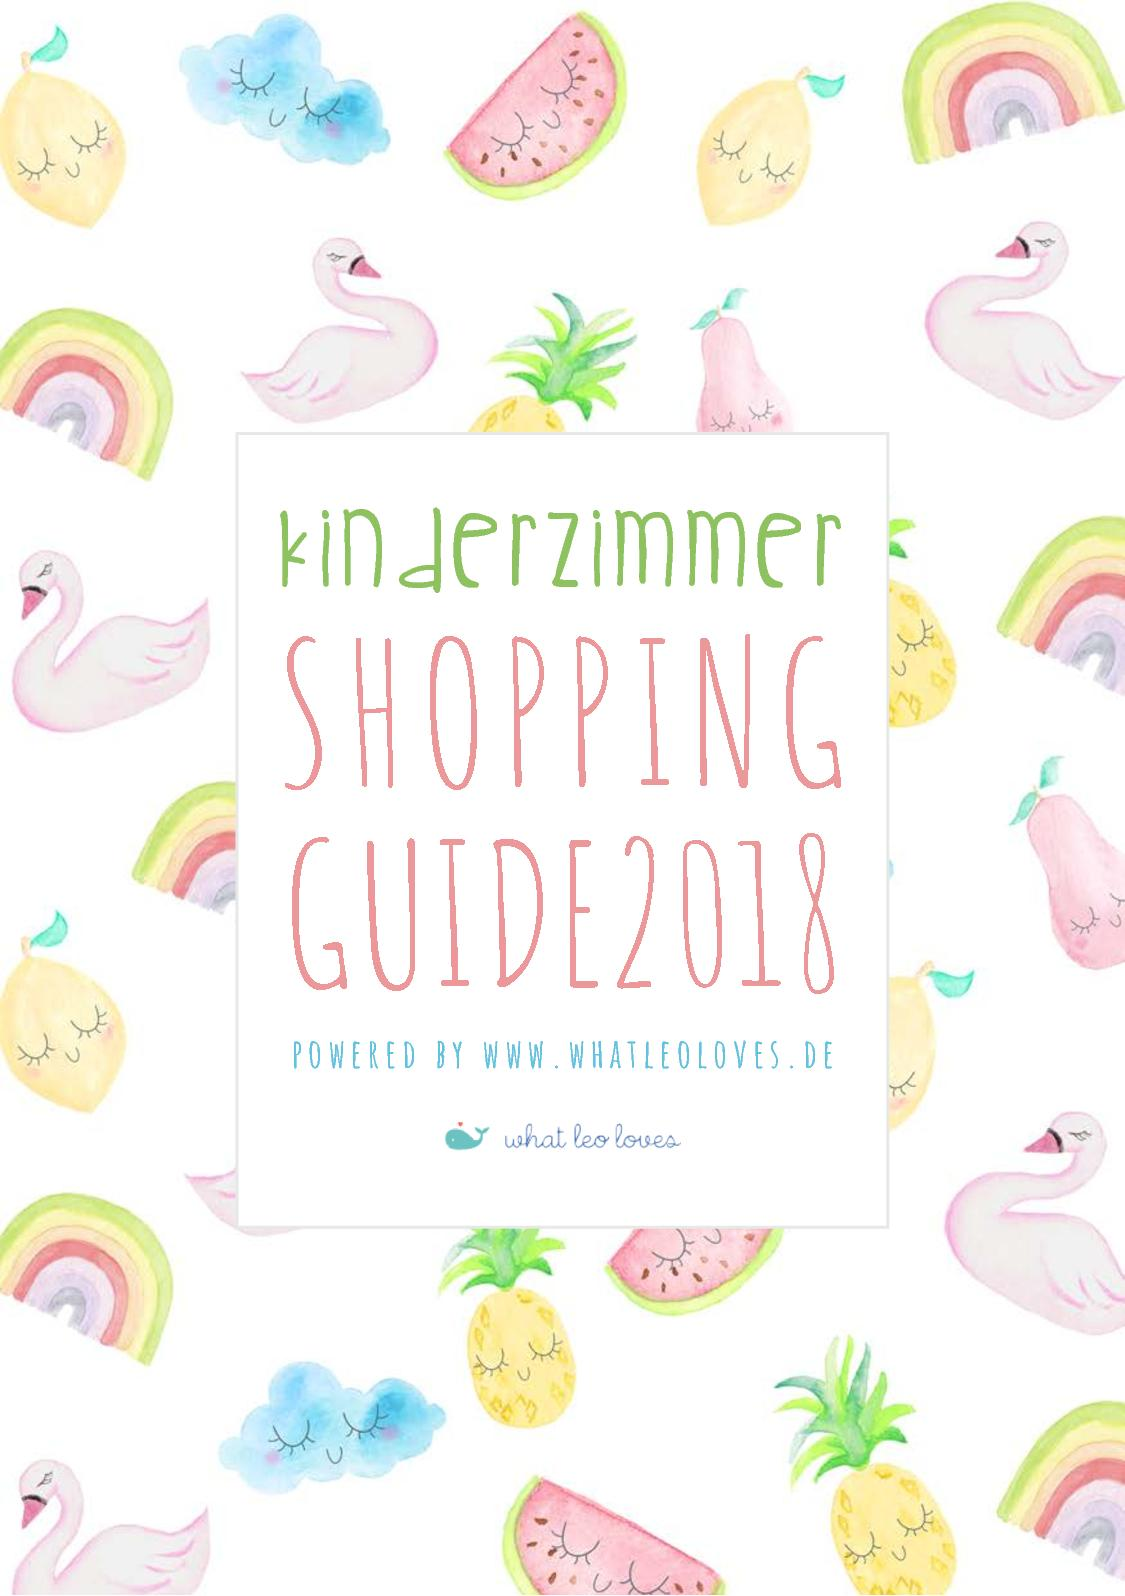 Calaméo   Kinderzimmer Shopping Guide 2018